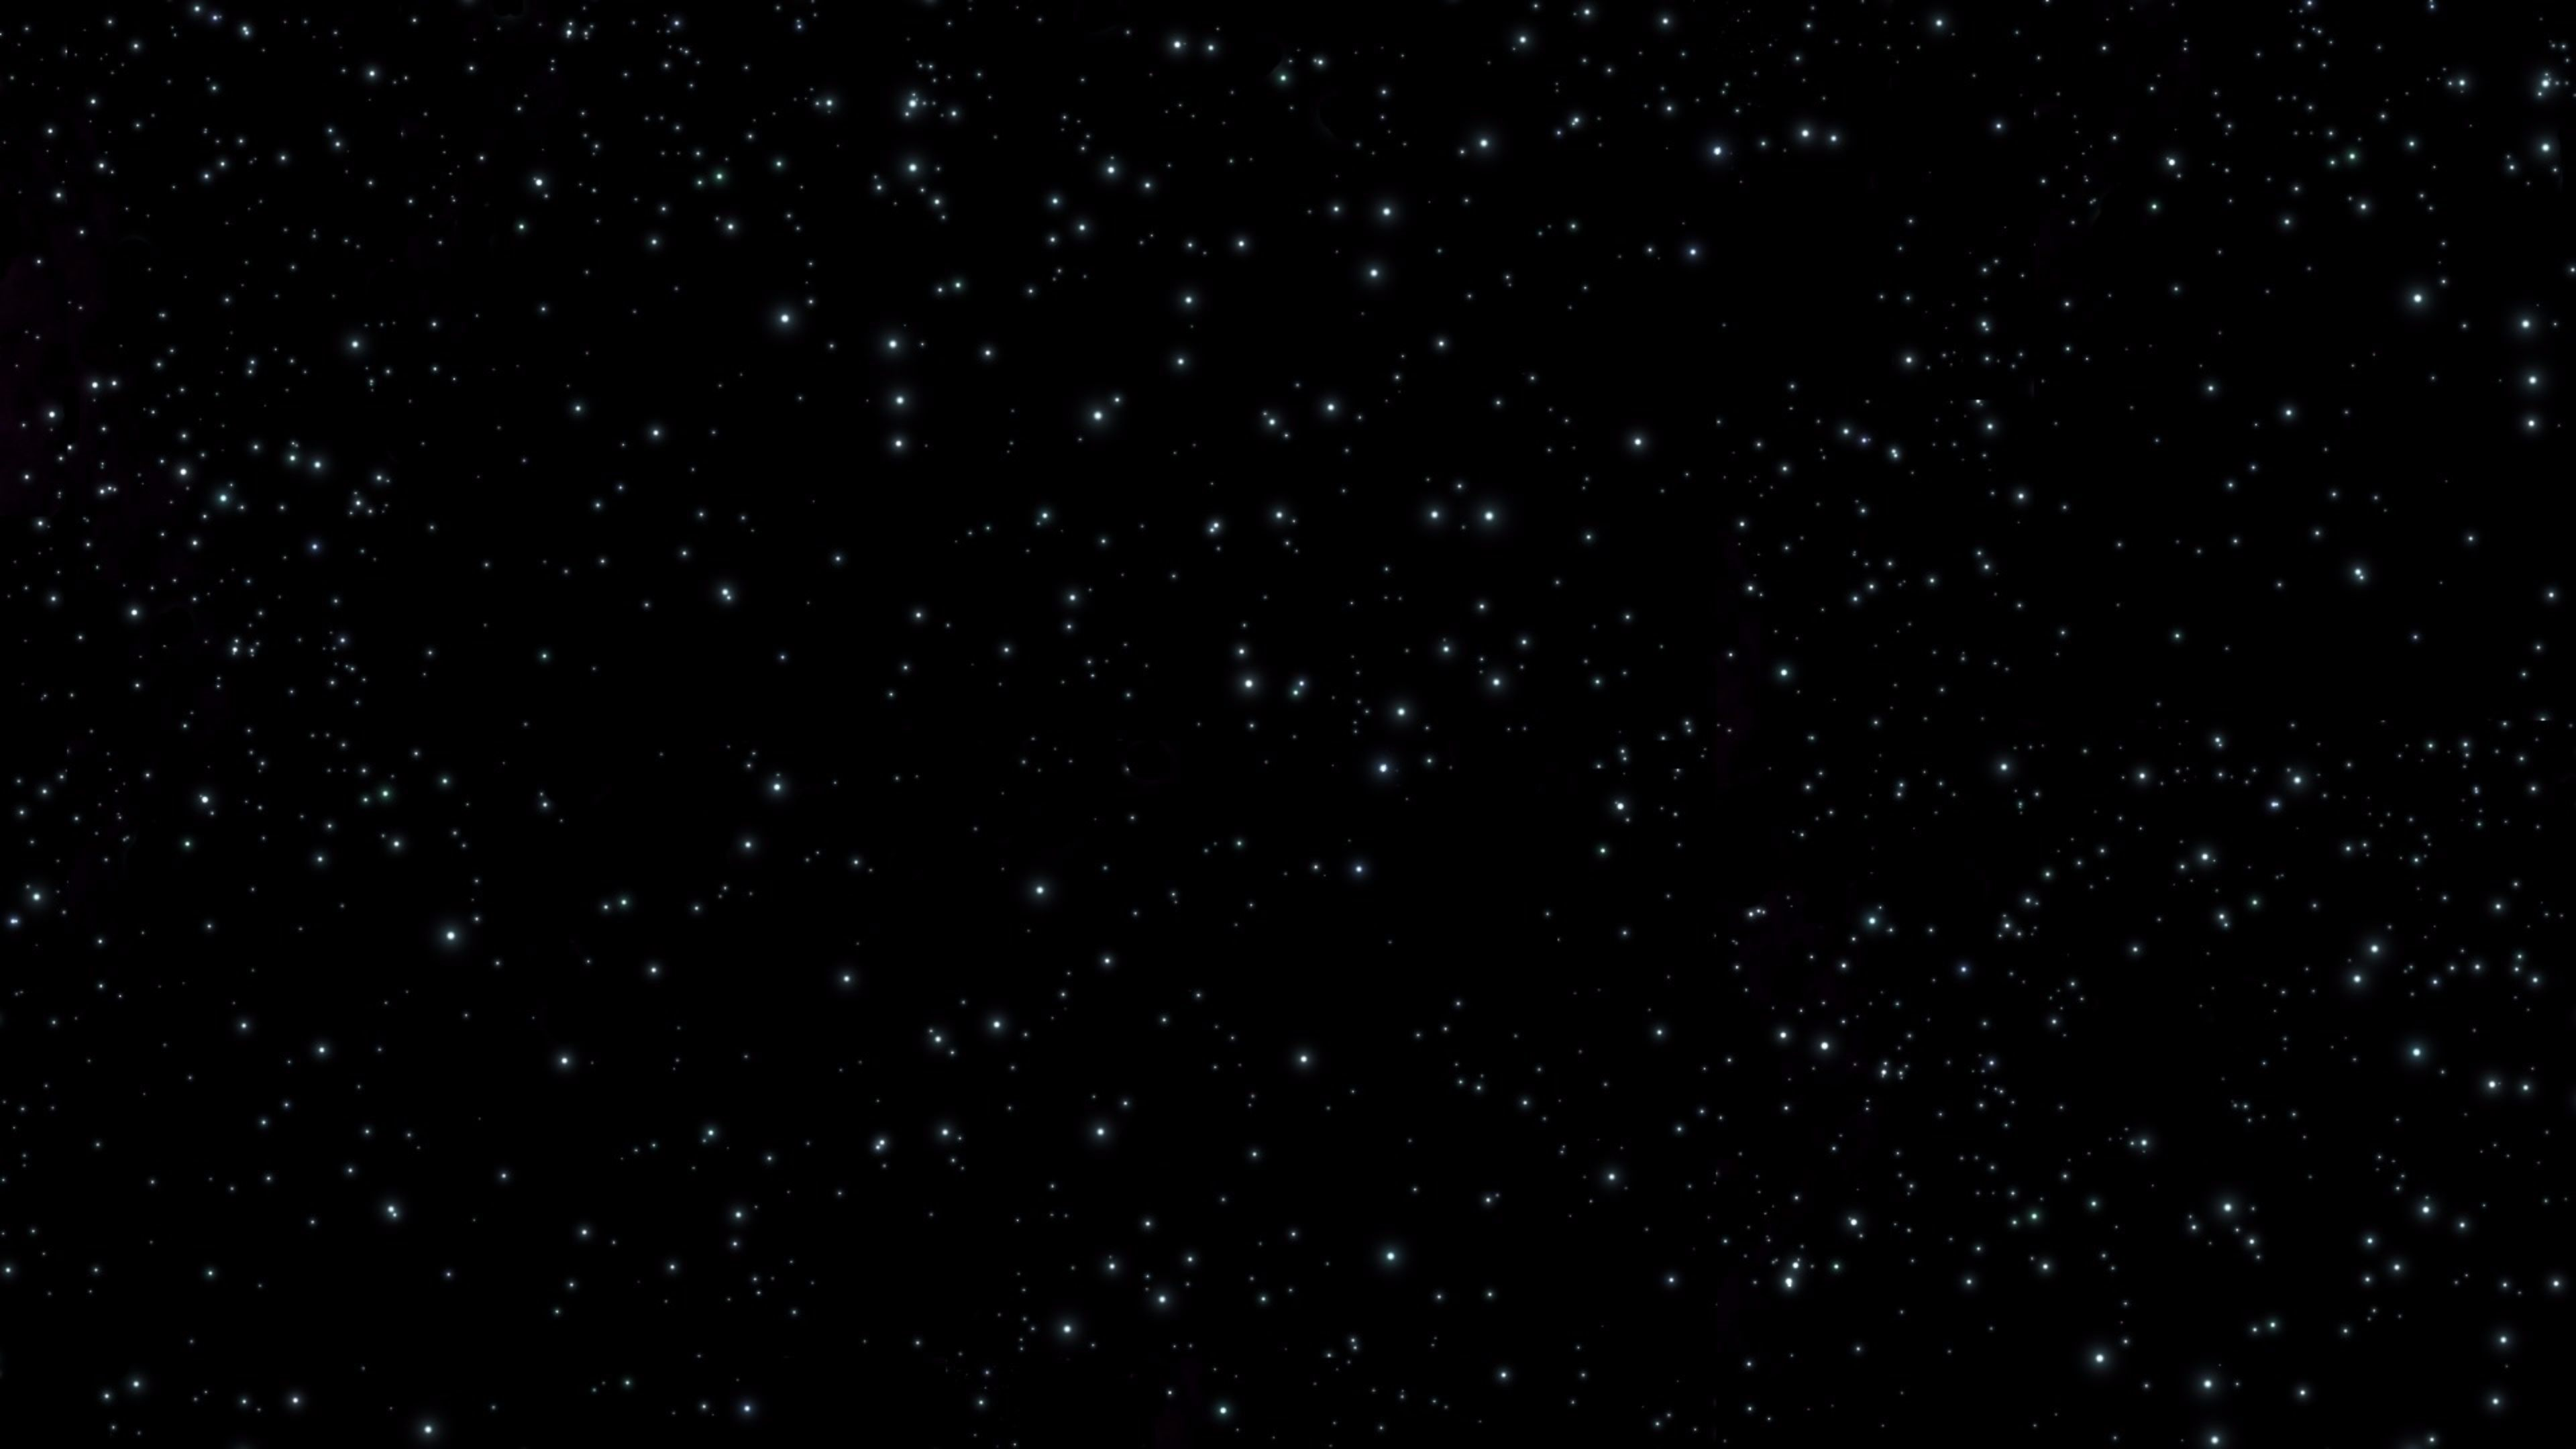 Dark Space Wallpaper Posted By Christopher Tremblay